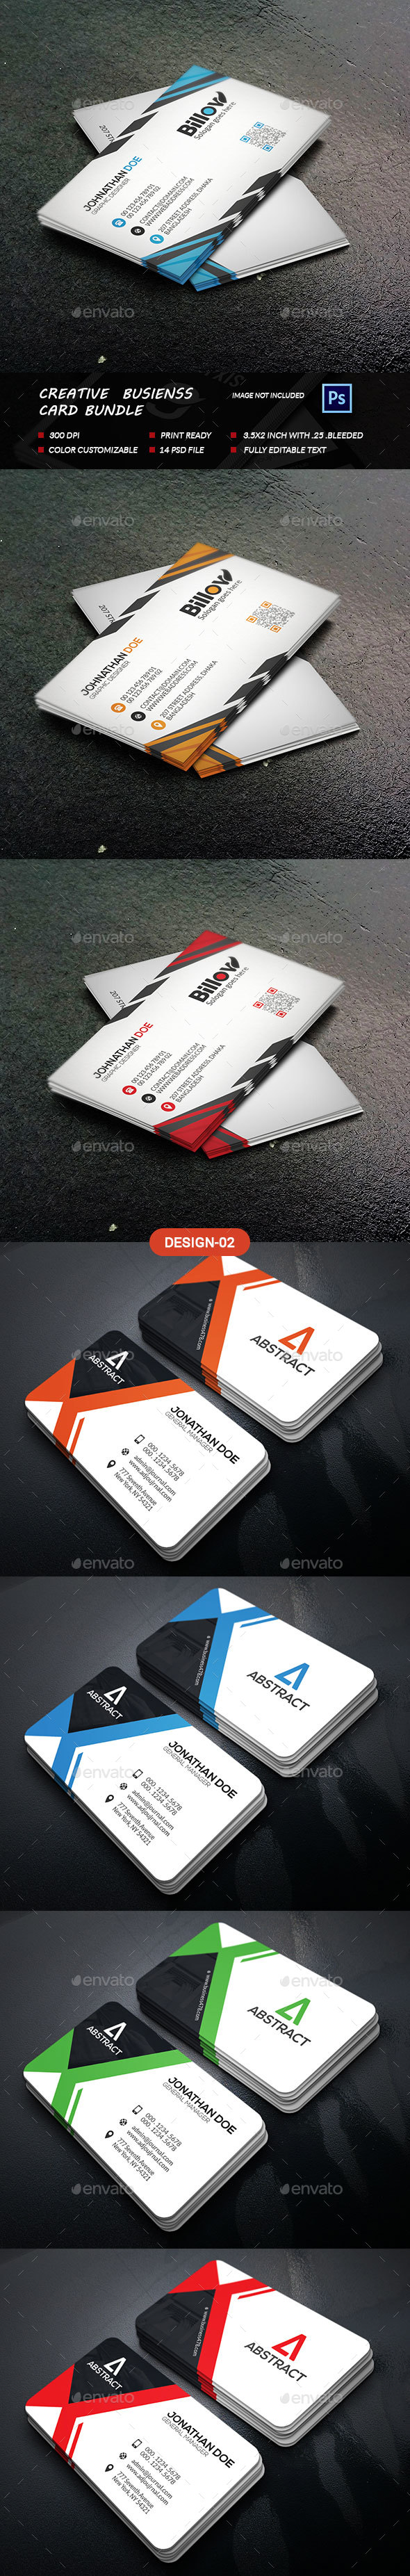 Creative Business Card Bundle - Business Cards Print Templates